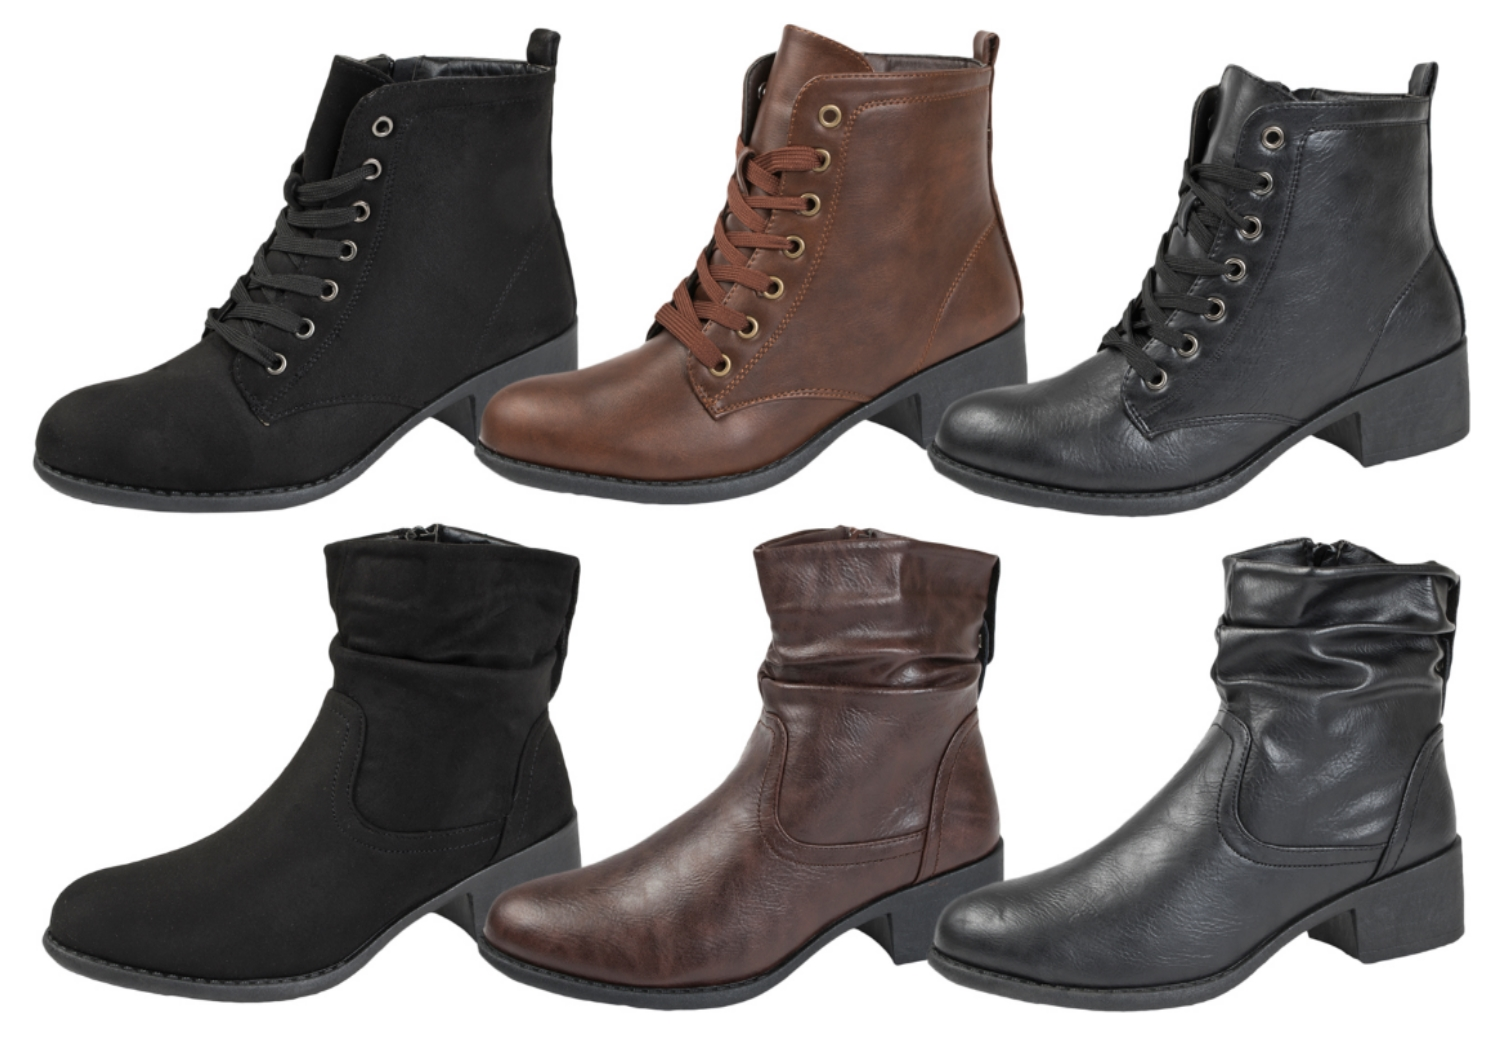 78cceee448cf Womens Comfort Low Heel Classic Ankle Boots Faux Leather Zip Or Lace Up  Shoes